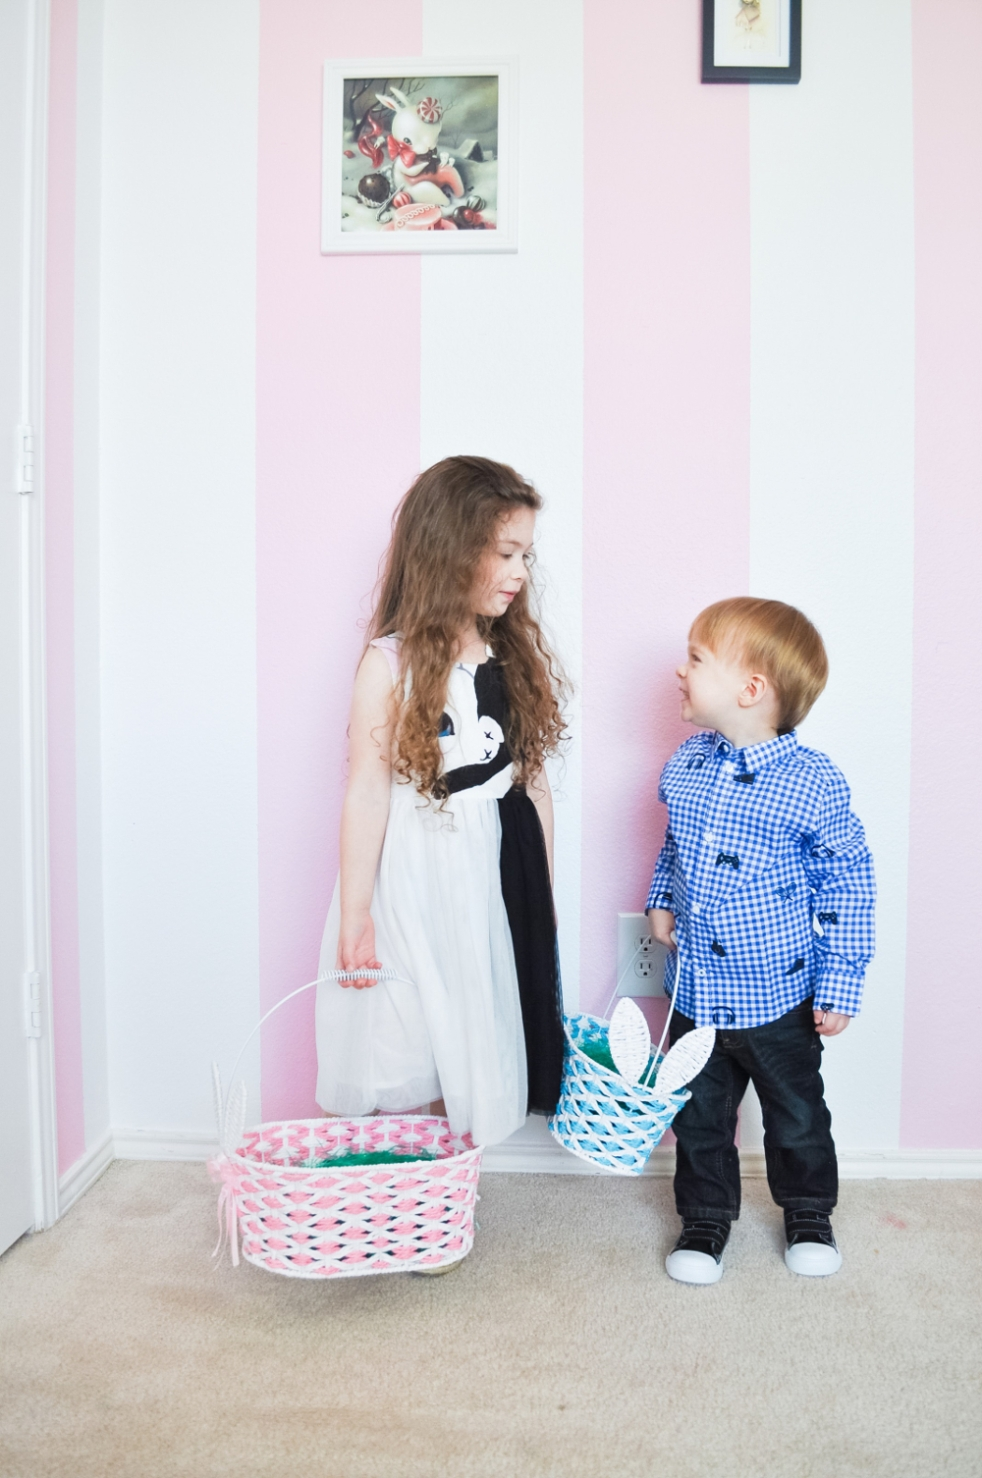 Pastel Carousel | Family | Motherhood | Parenting | Easter 2016